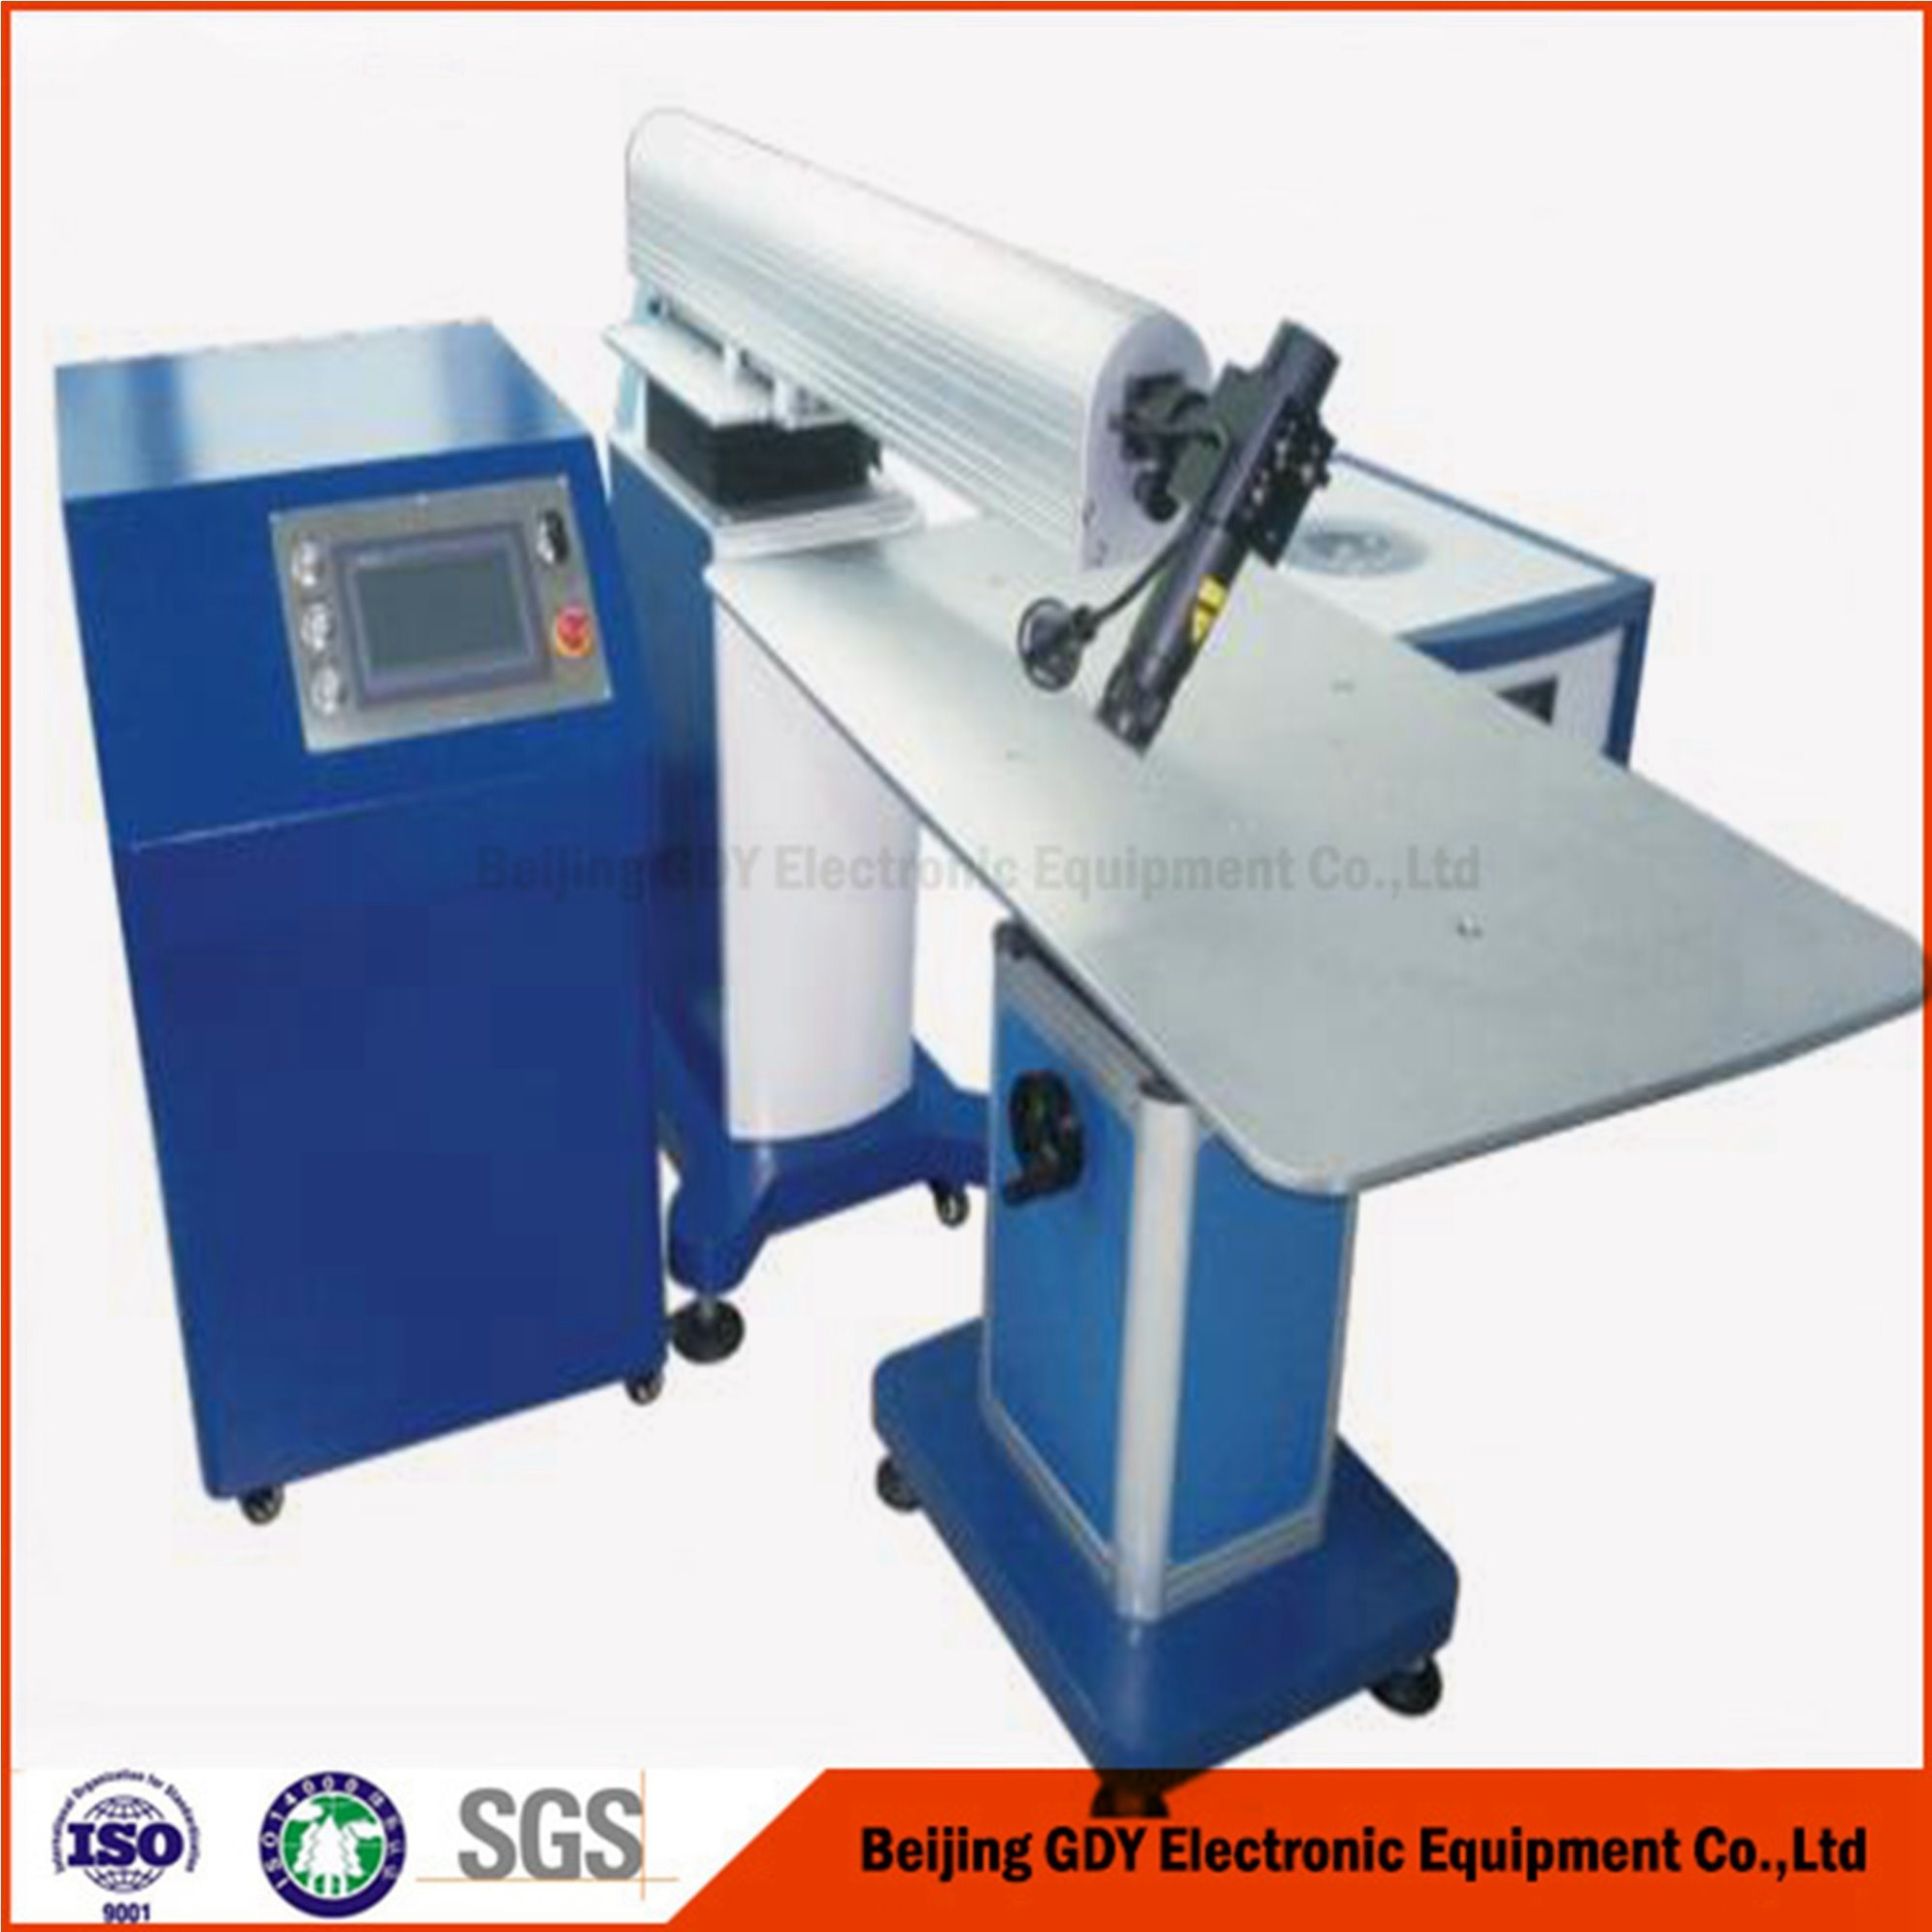 Dedicated Laser Welding Machine for Advertising Words